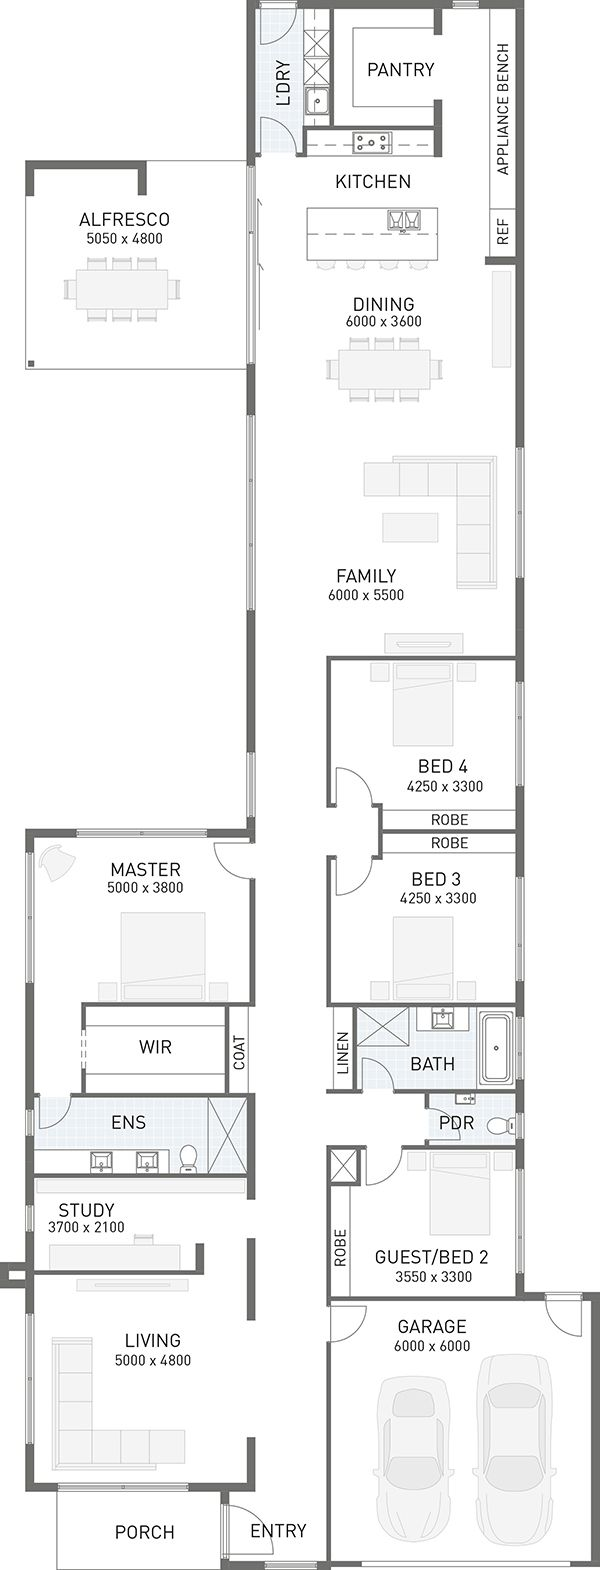 Kambara 37 Floorplan JUNE 2017 v3 600pxW2